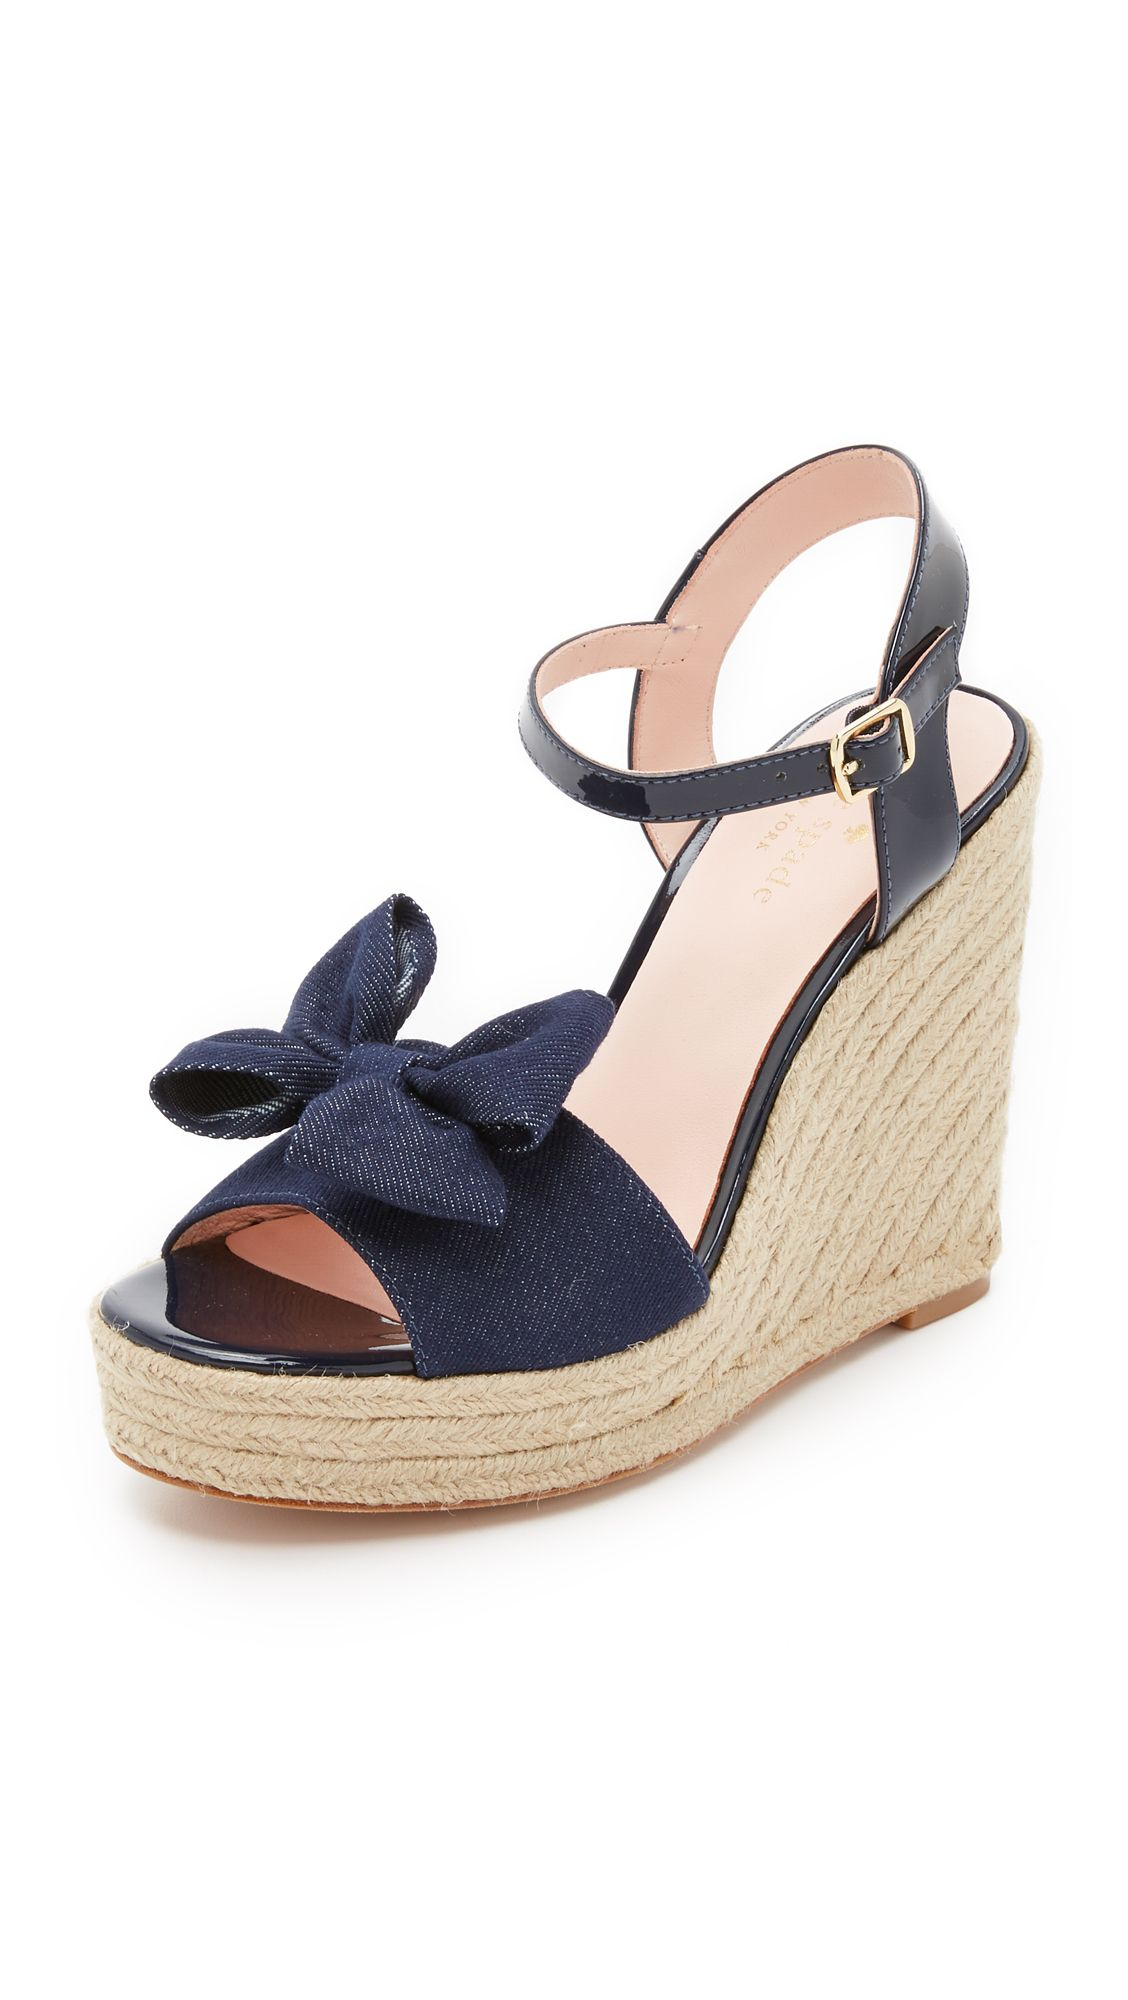 373c9494df0 Kate Spade New York Darya Espadrille Wedge Sandals - Blue